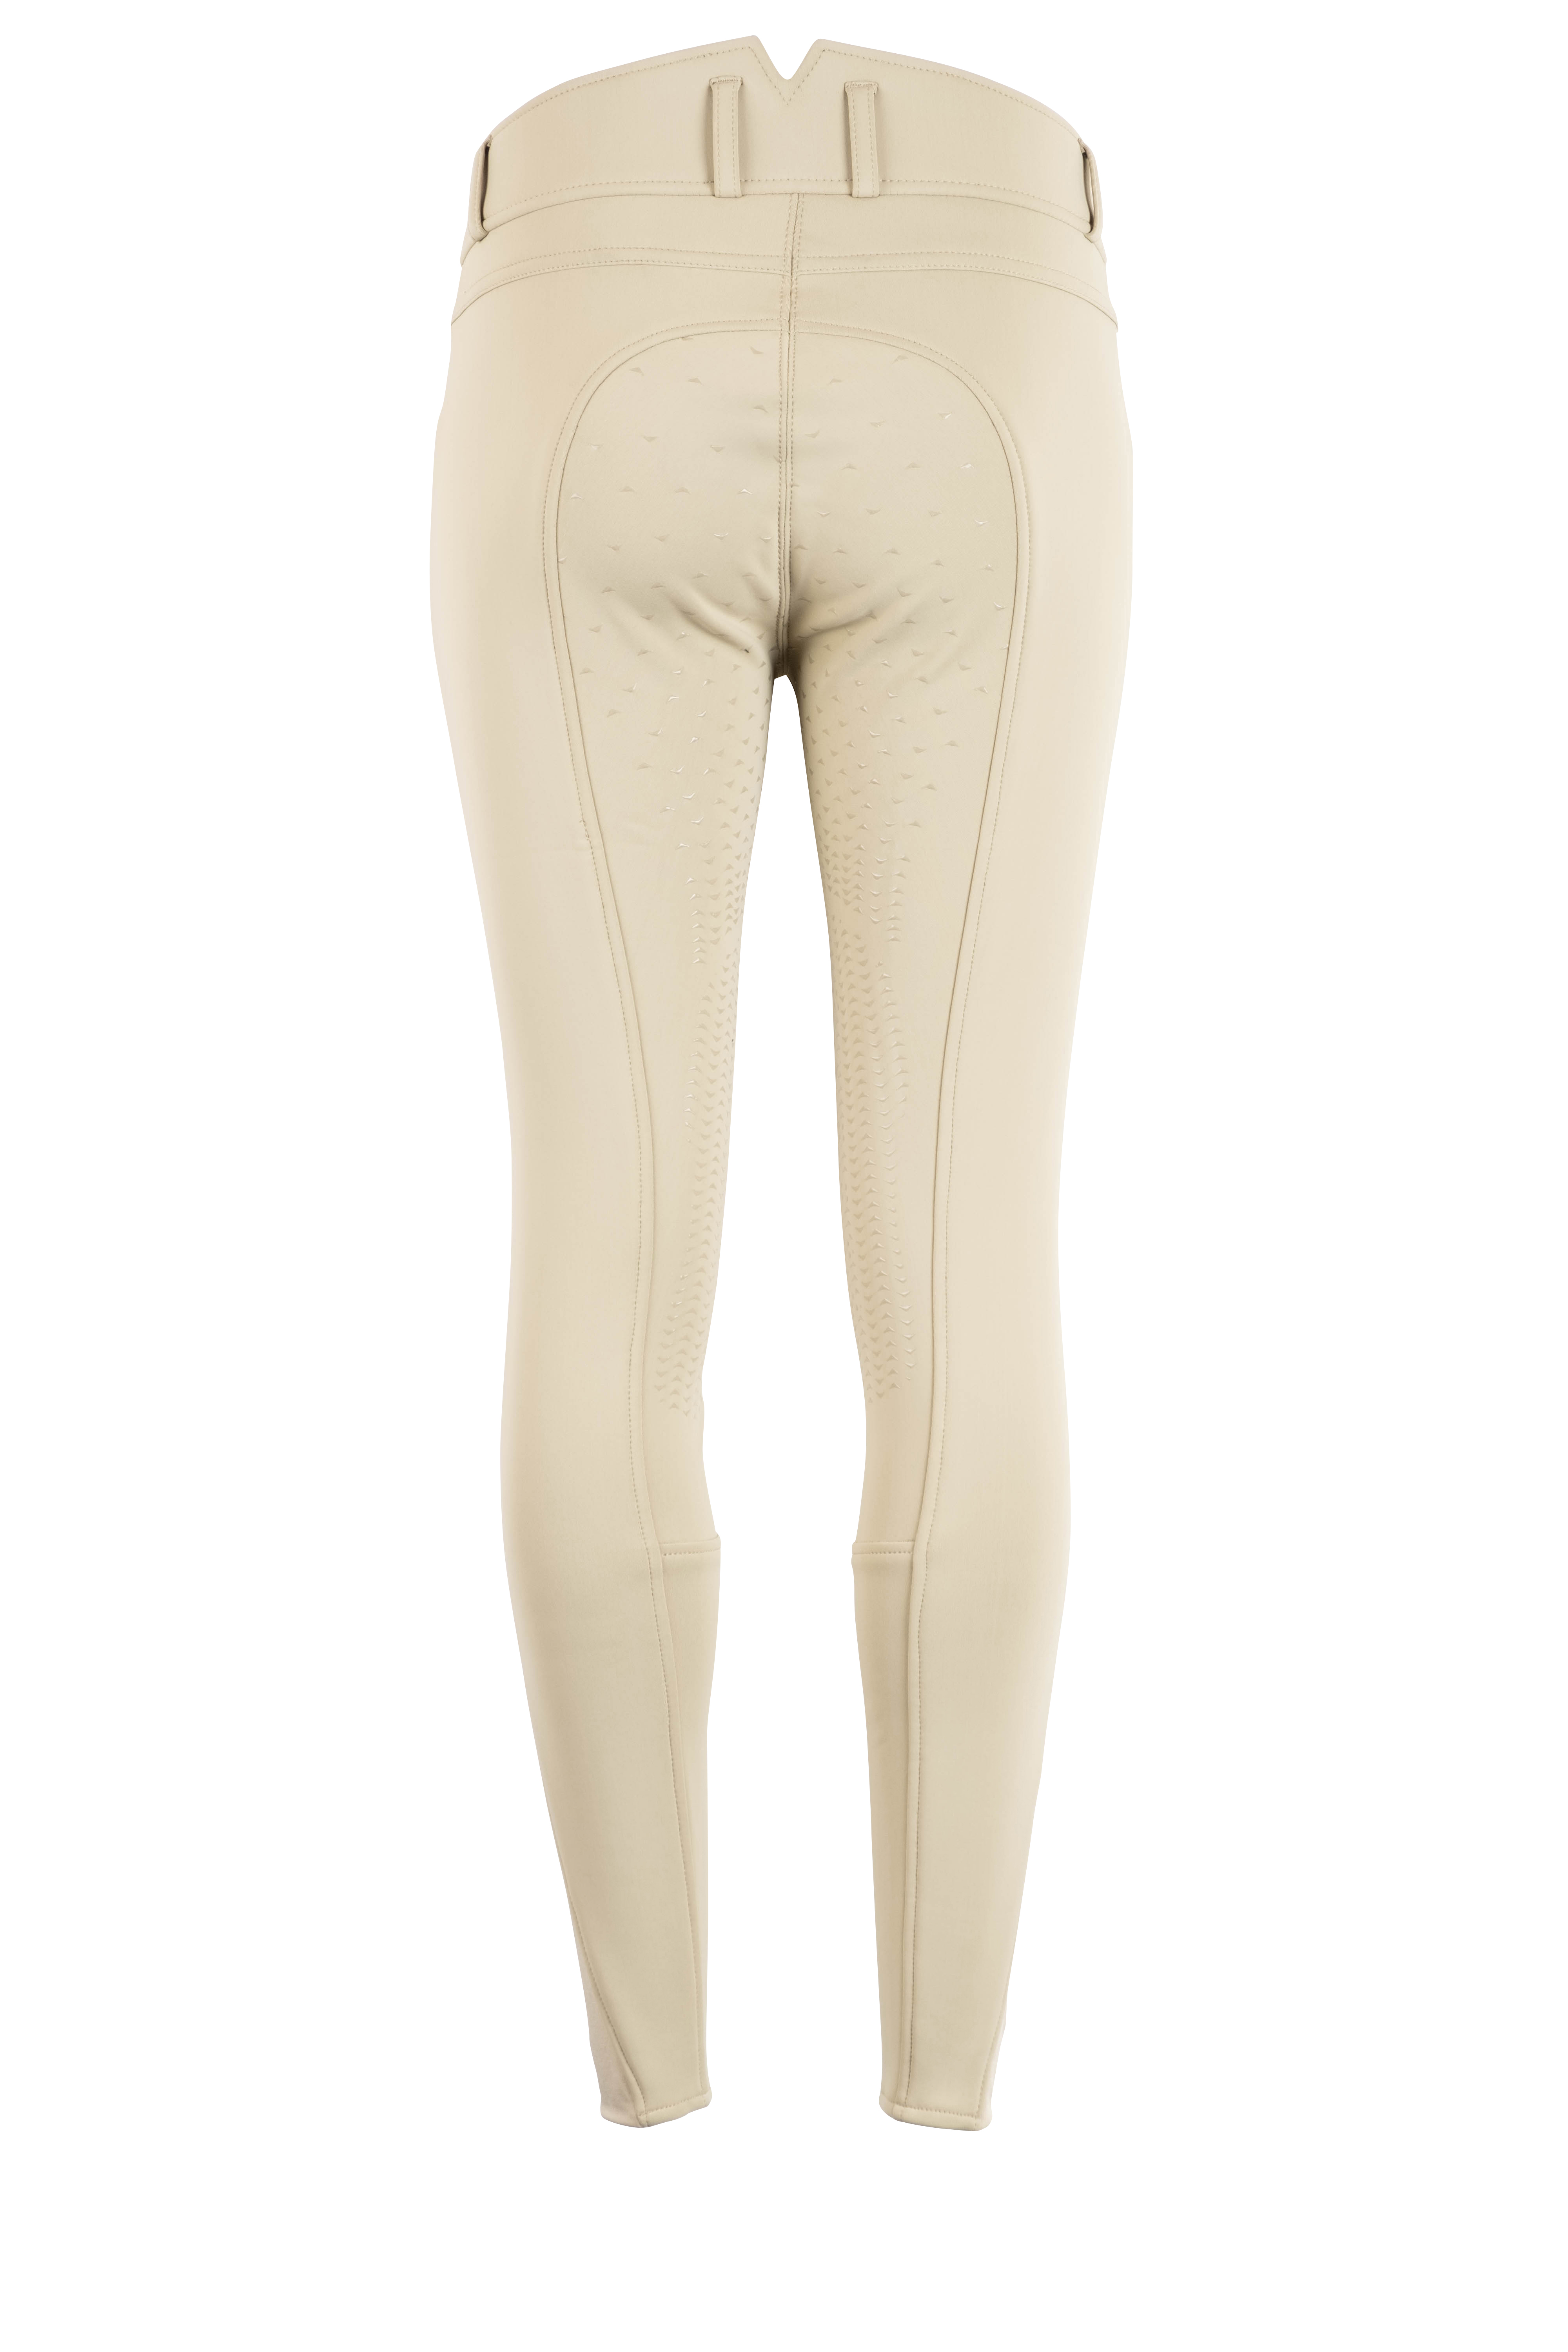 2034-92-Montar-Kayla-winter-breeches-2.jpg